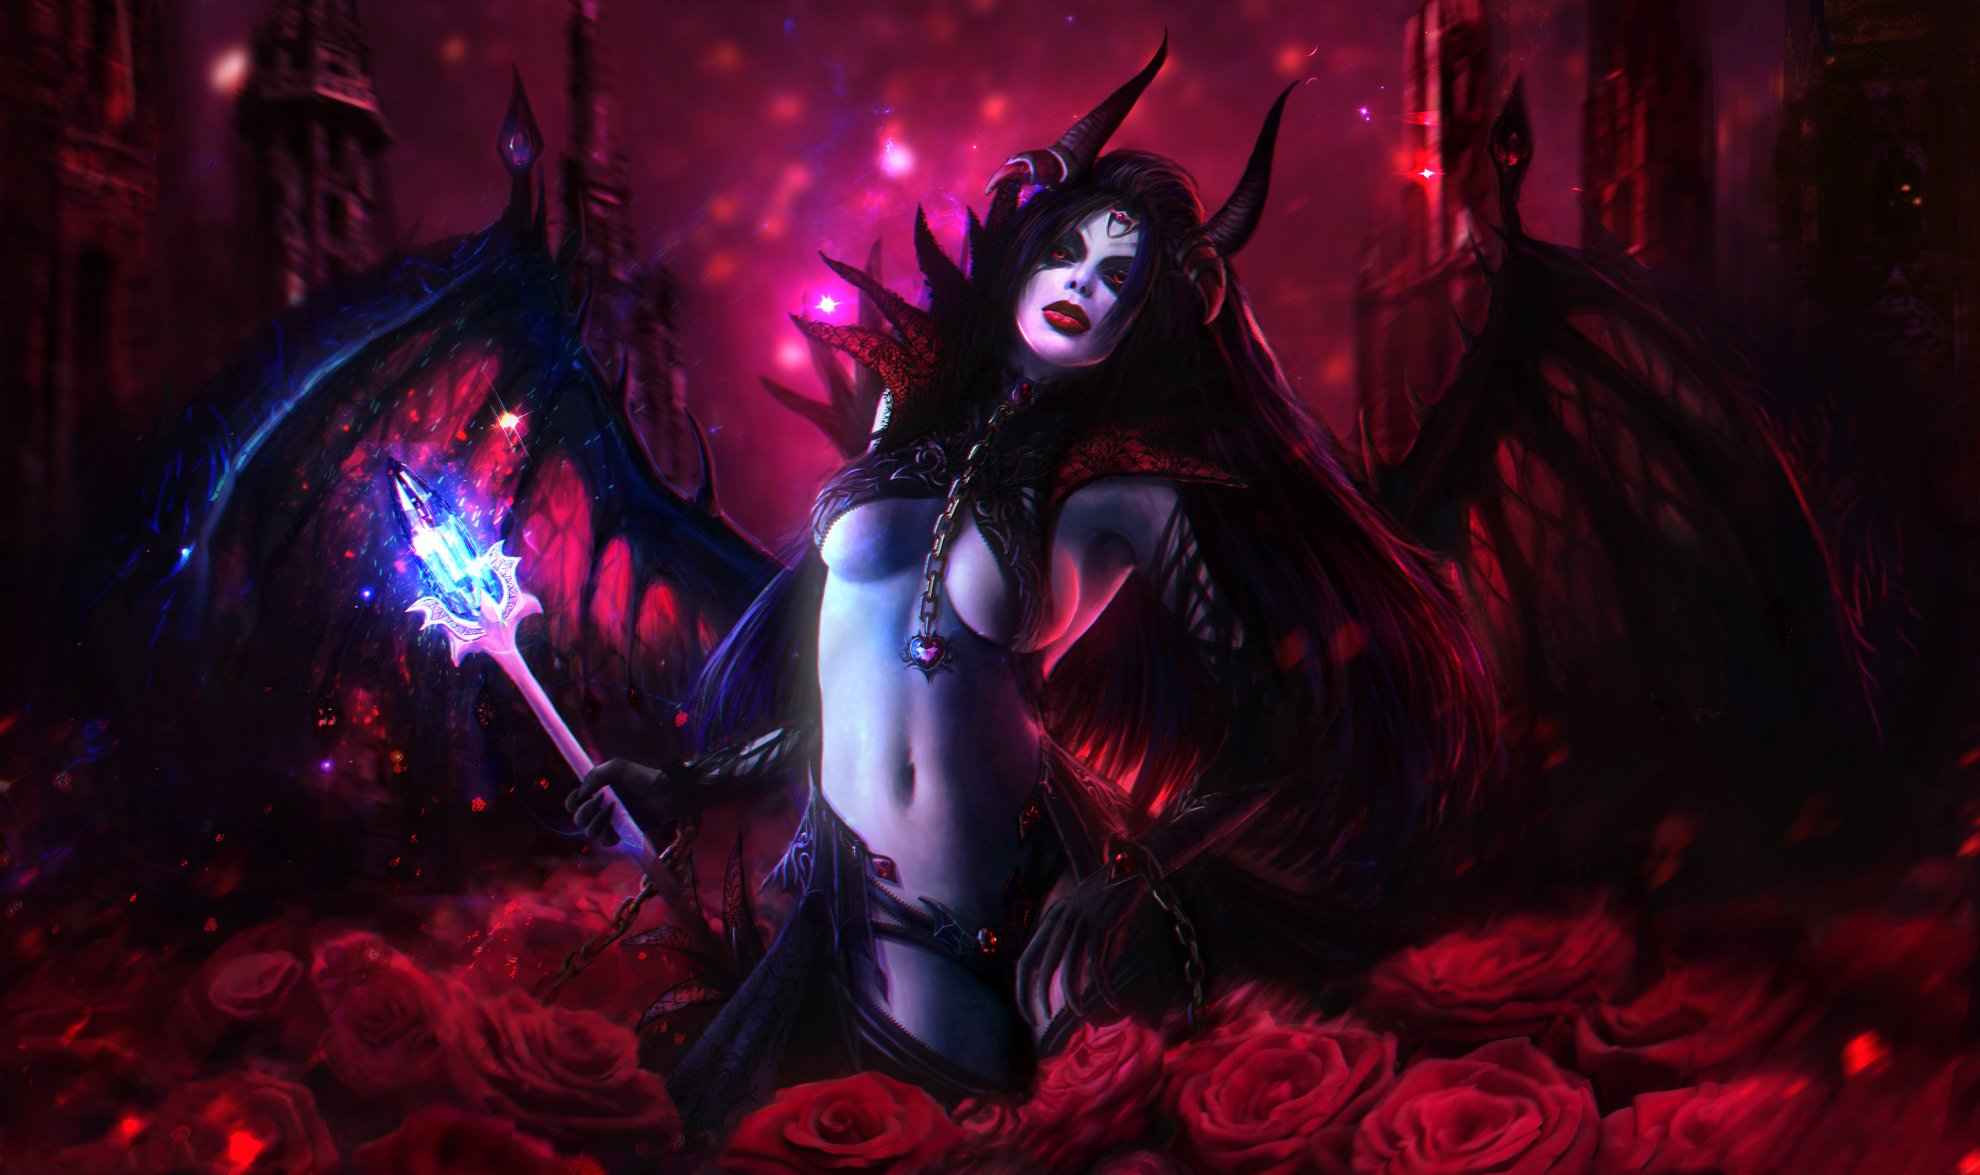 DOTA 2 Queen of Pain Demon Roses Mage Staff Games Girls Fantasy dark    Queen Of Pain Dota 2 Cosplay